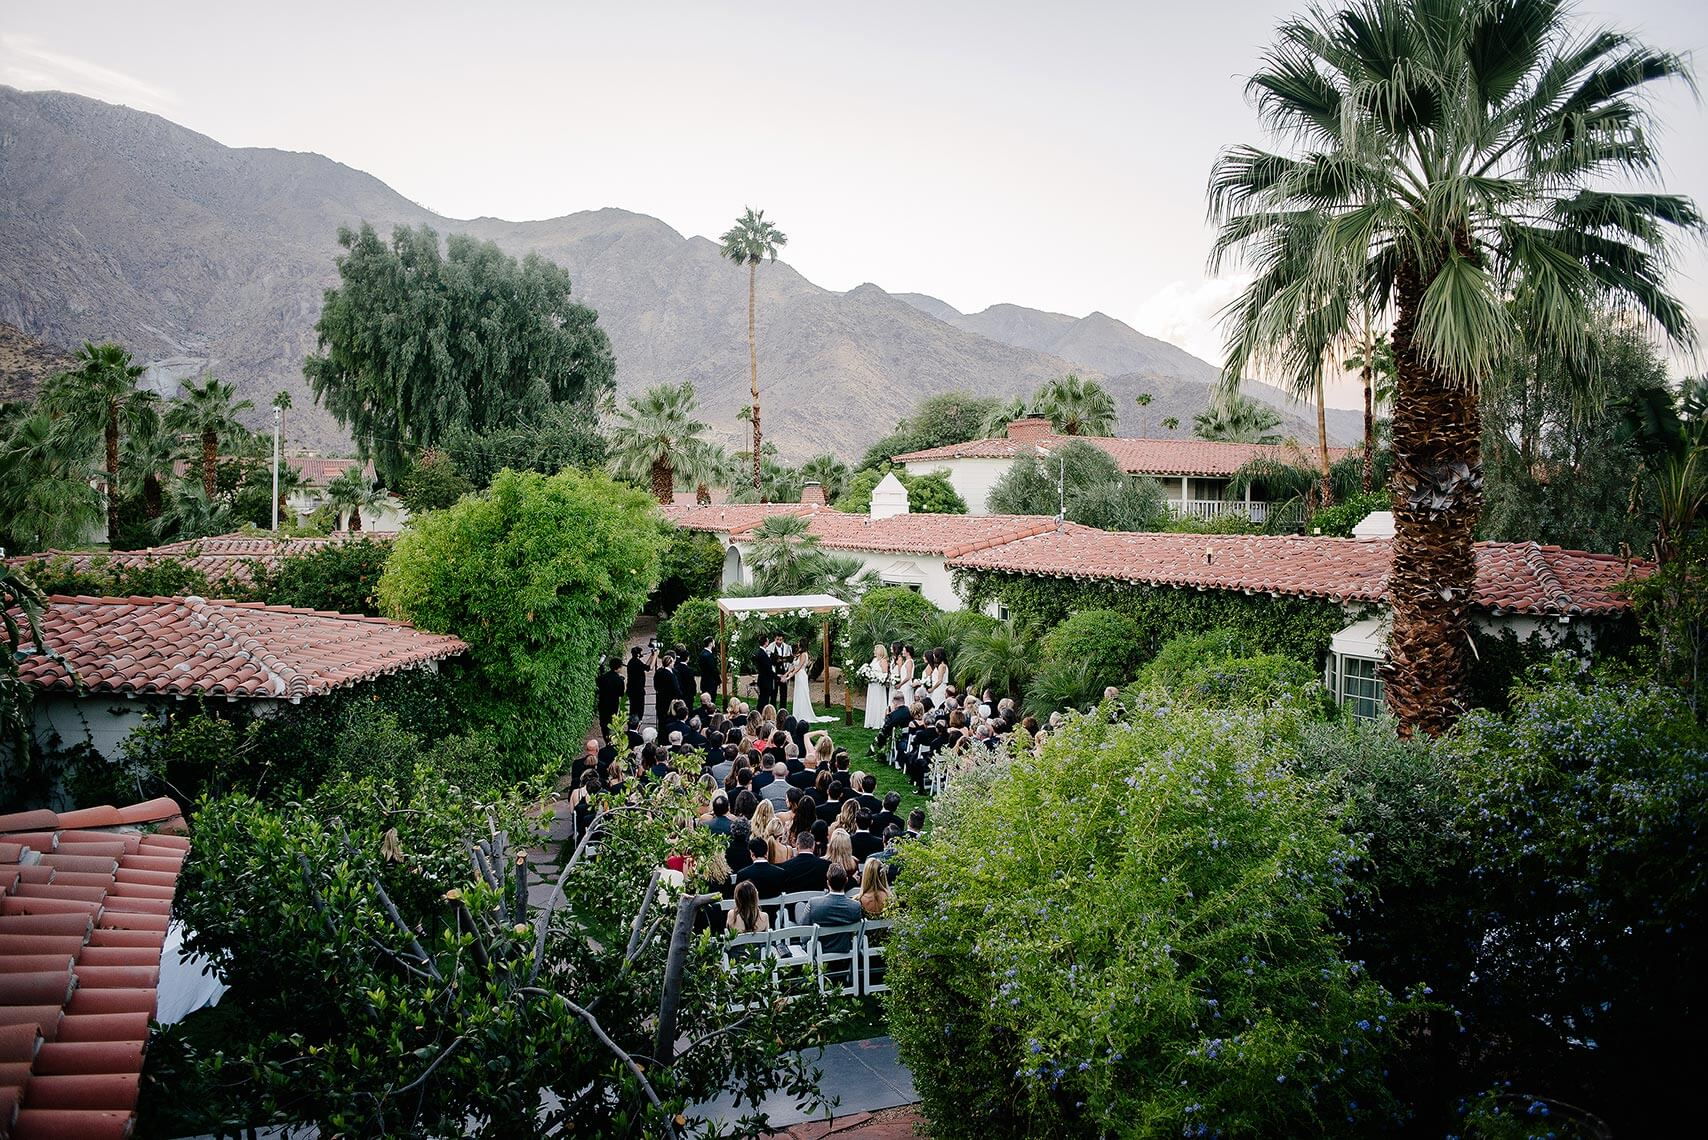 colony-palms-hotel-wedding-palm-springs-wedding-photography-12.jpg